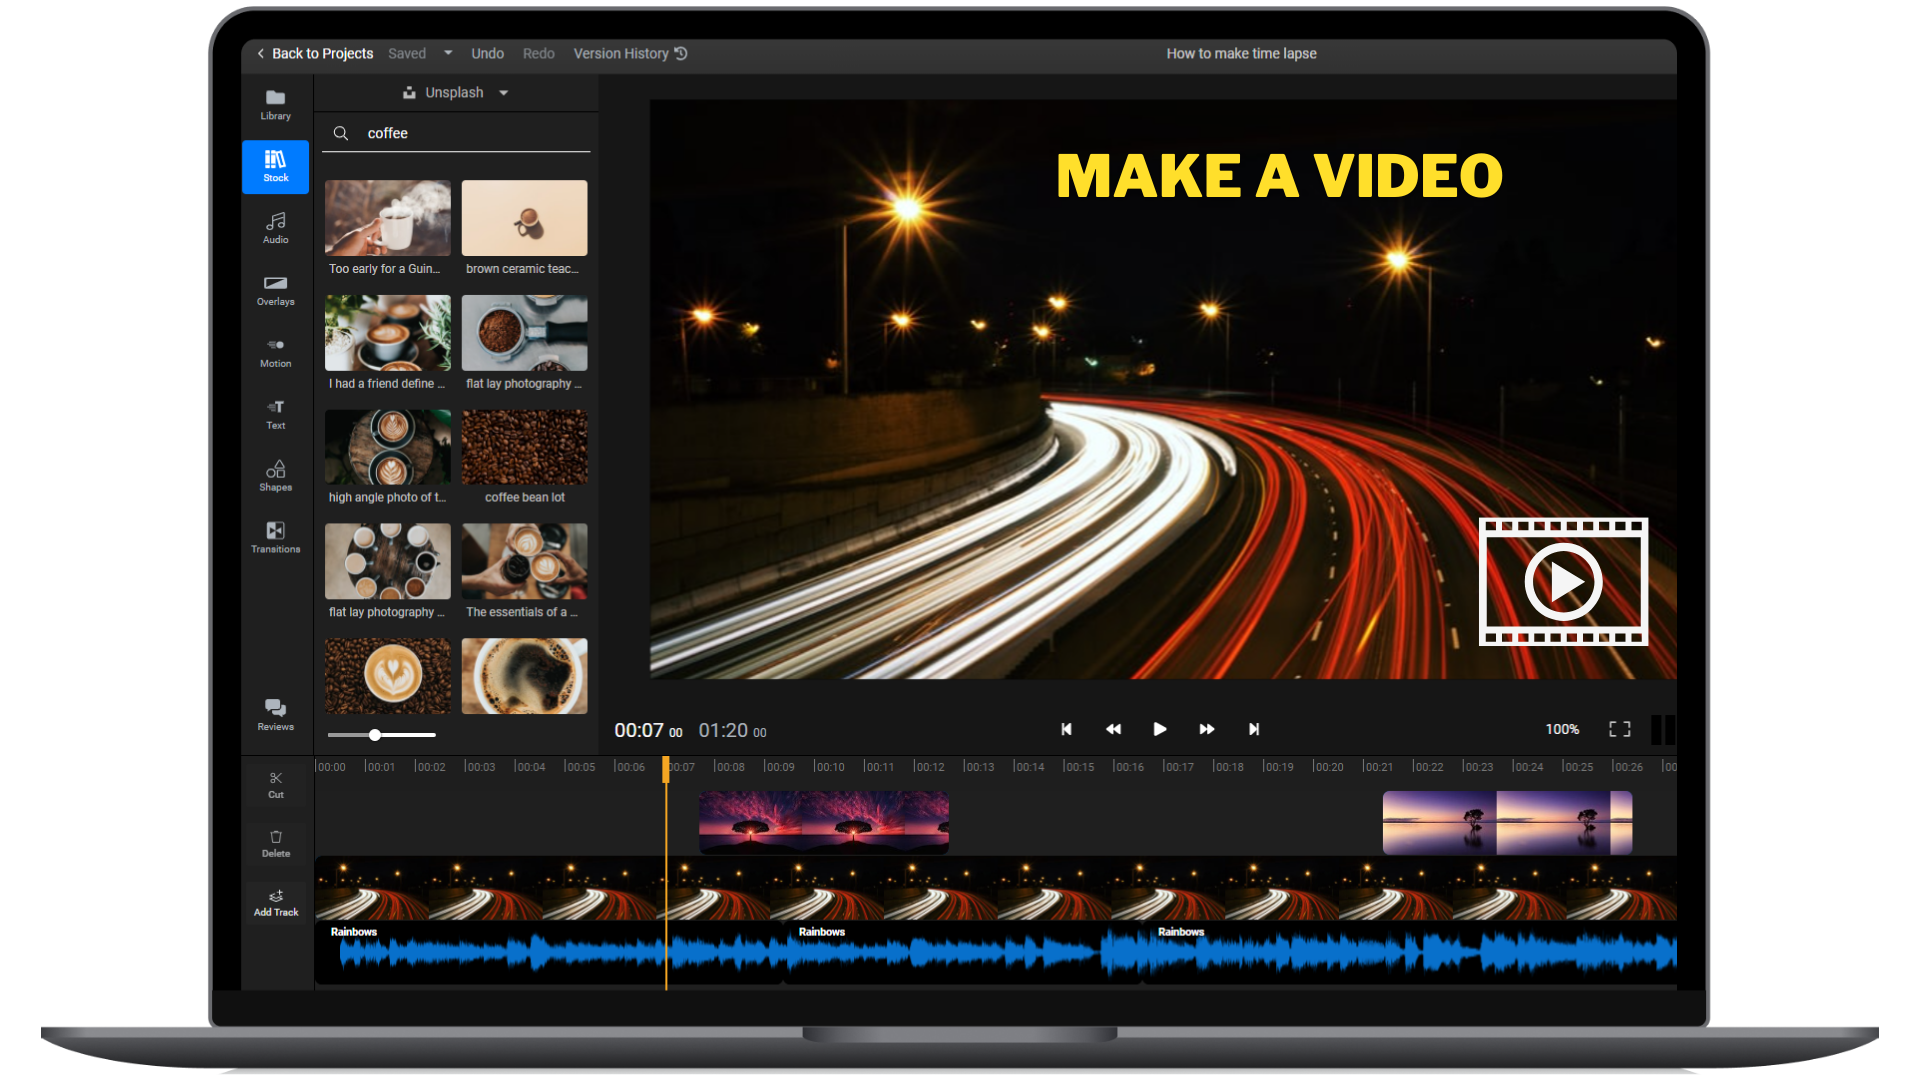 Add images to your video online